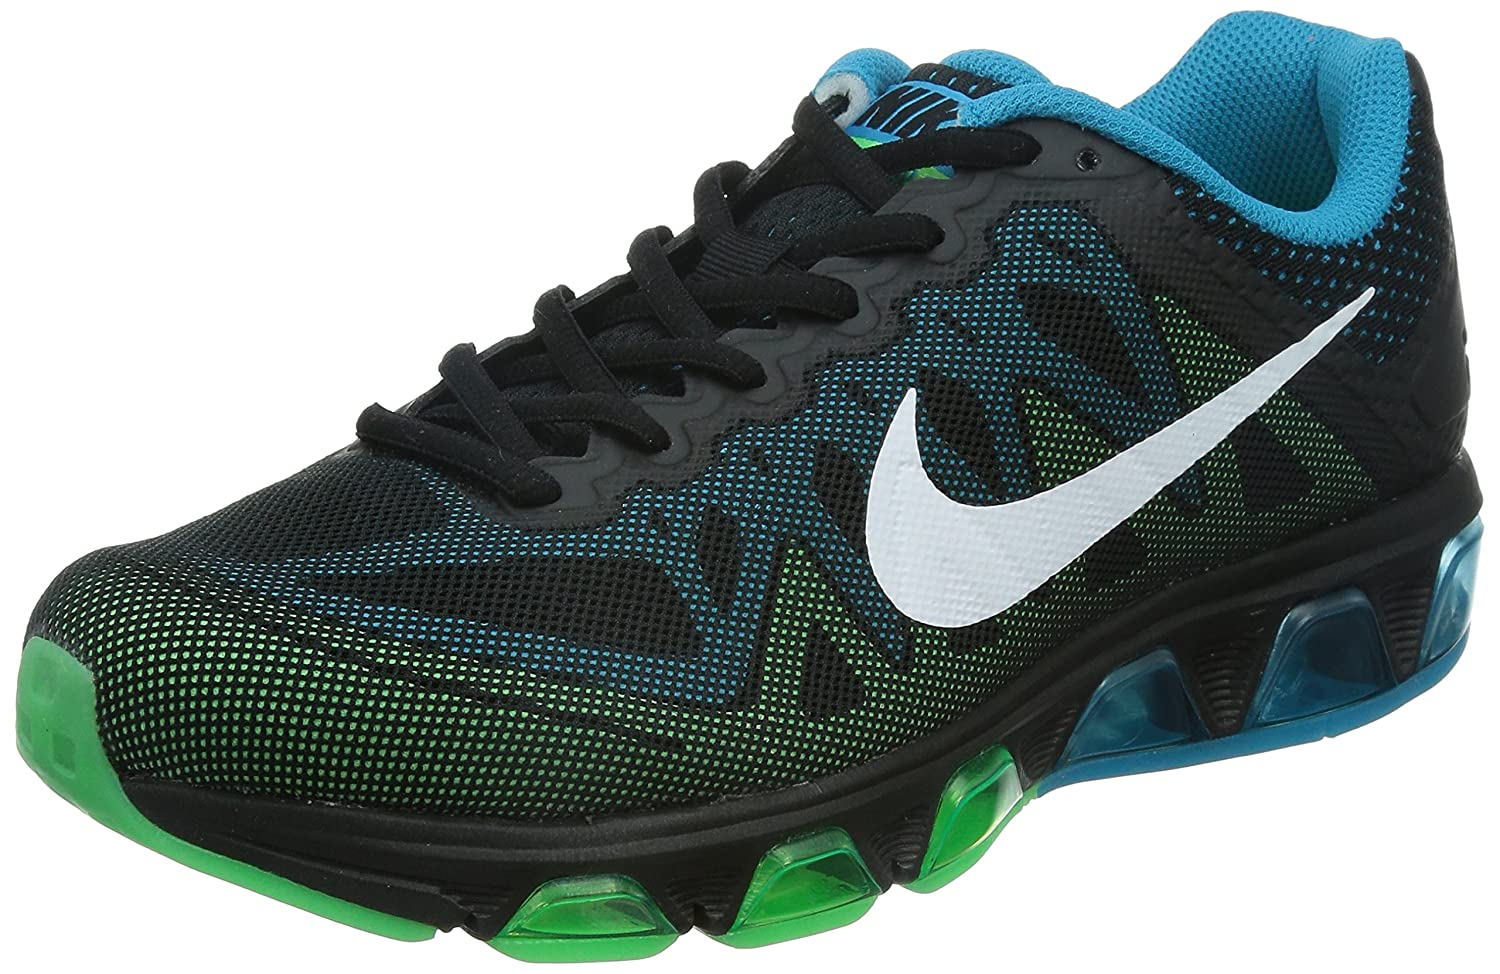 cheap for discount b9c9c 8f445 ... top quality outlet nike air max tailwind 7 men round toe synthetic  black running shoe.